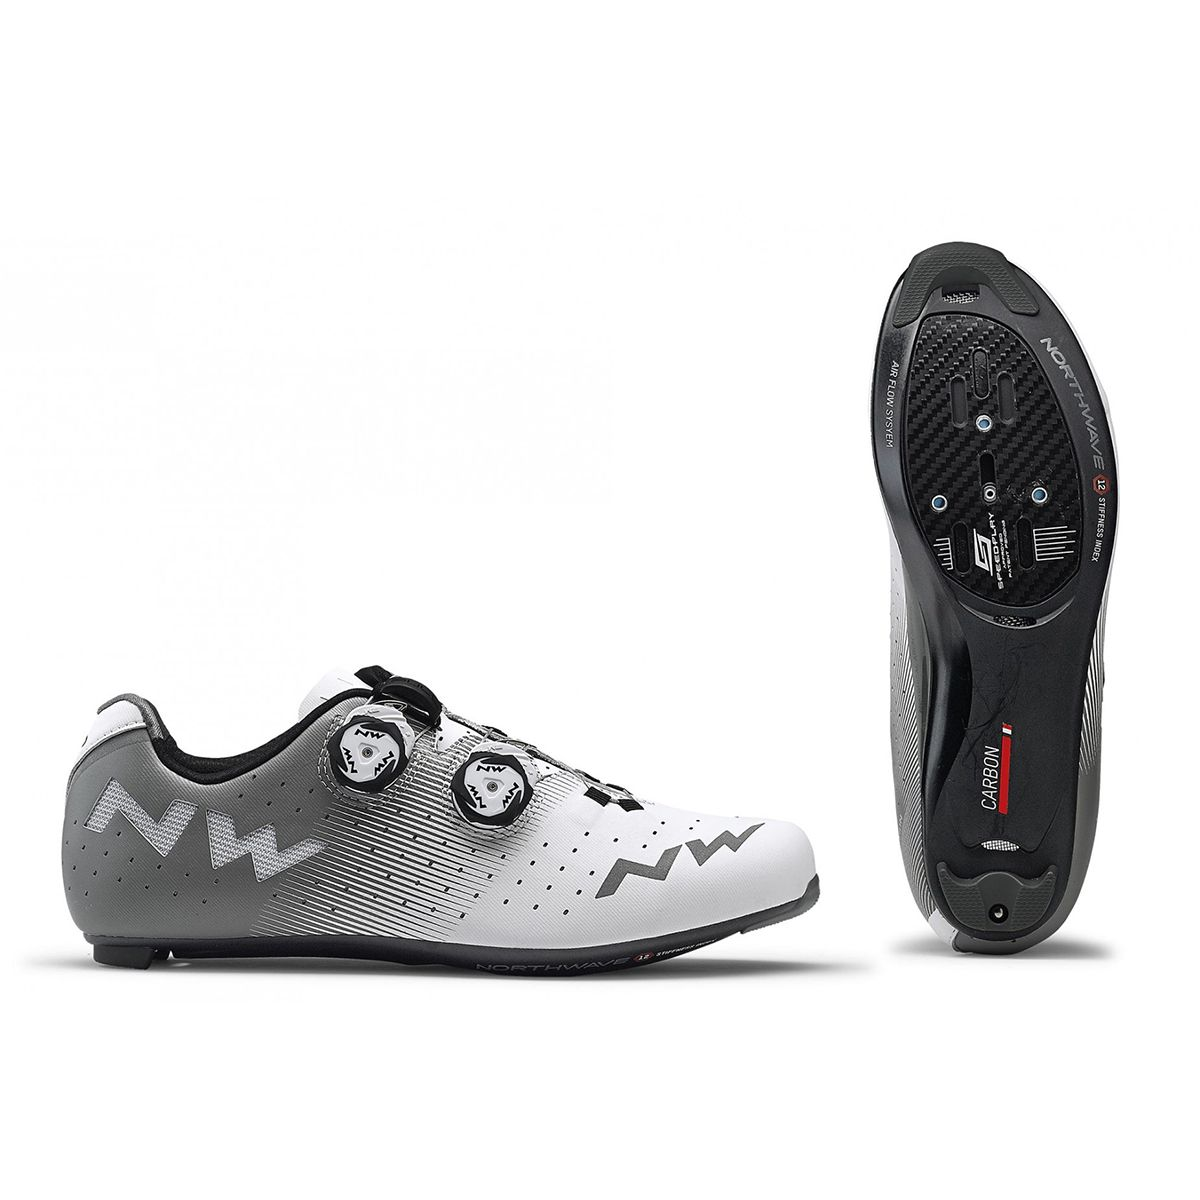 REVOLUTION road shoes